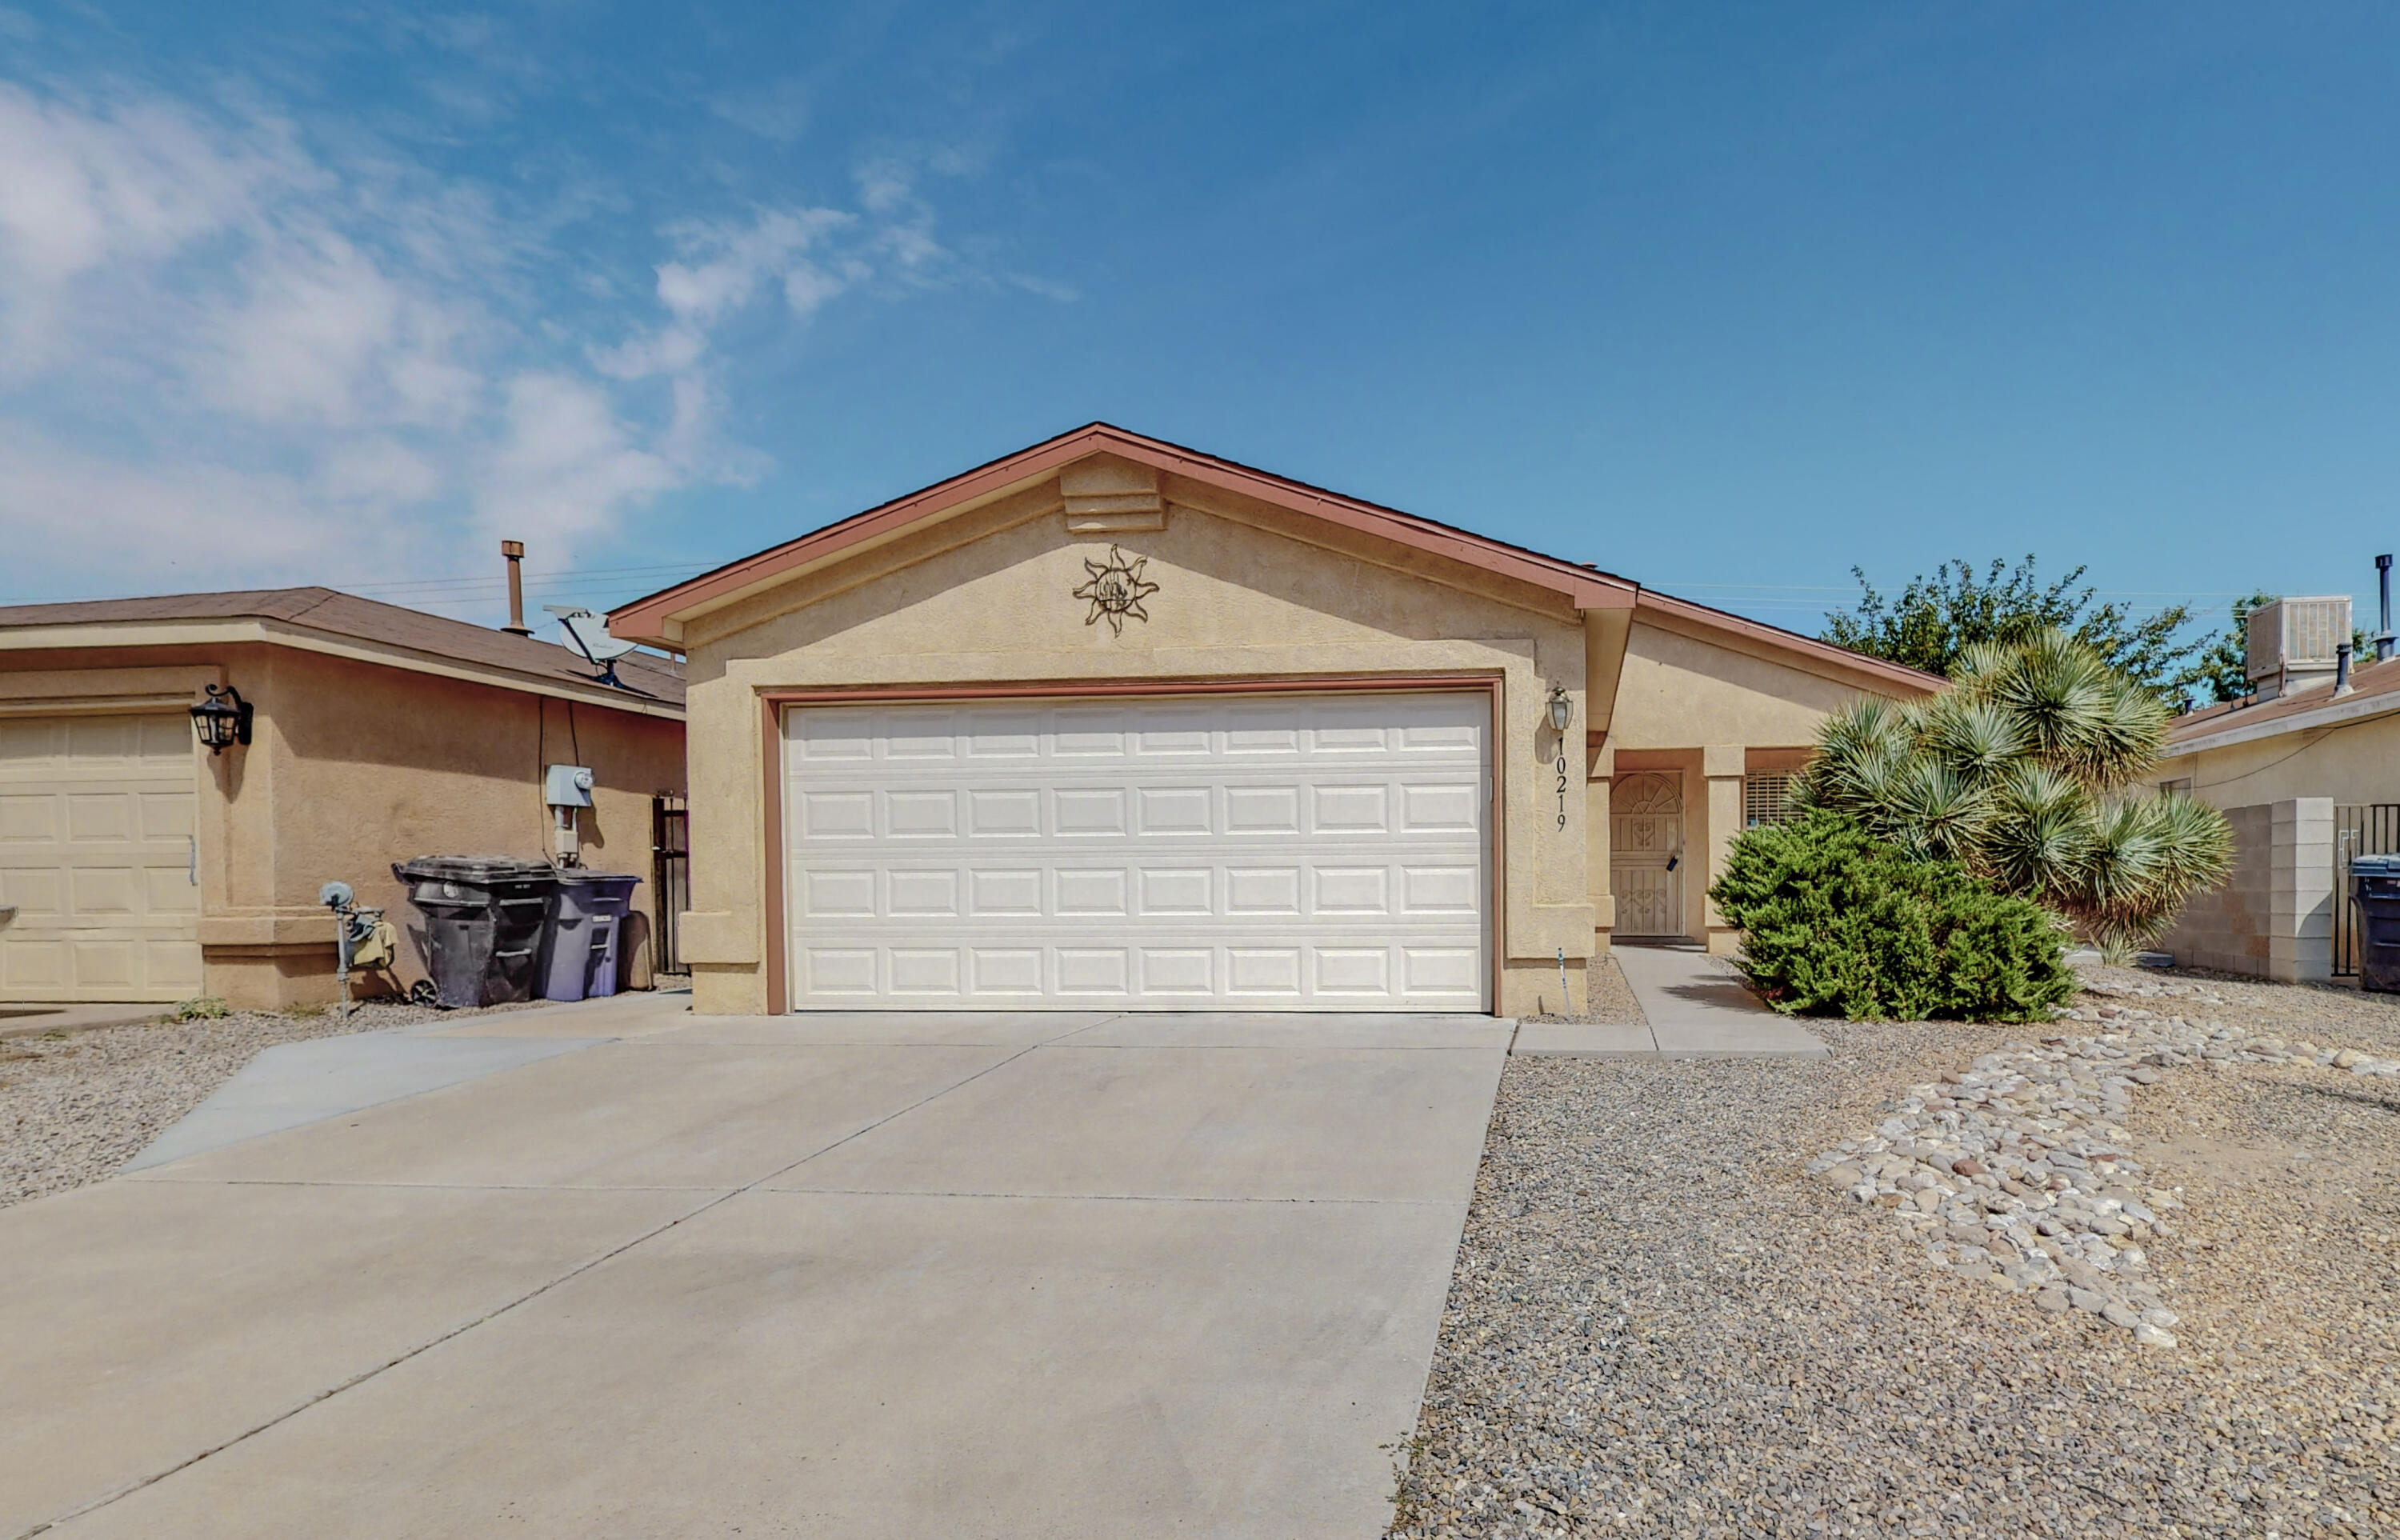 Beautiful and very clean SW 3 BR, 2 Bath home with lots of upgrades, gas log fireplace, nice covered patio in backyard.  Backyard has block wall all around, safety bars on doors and windows.  Minutes from shopping center and freeway access.  Must see to believe.  Come bring your buyers today!!